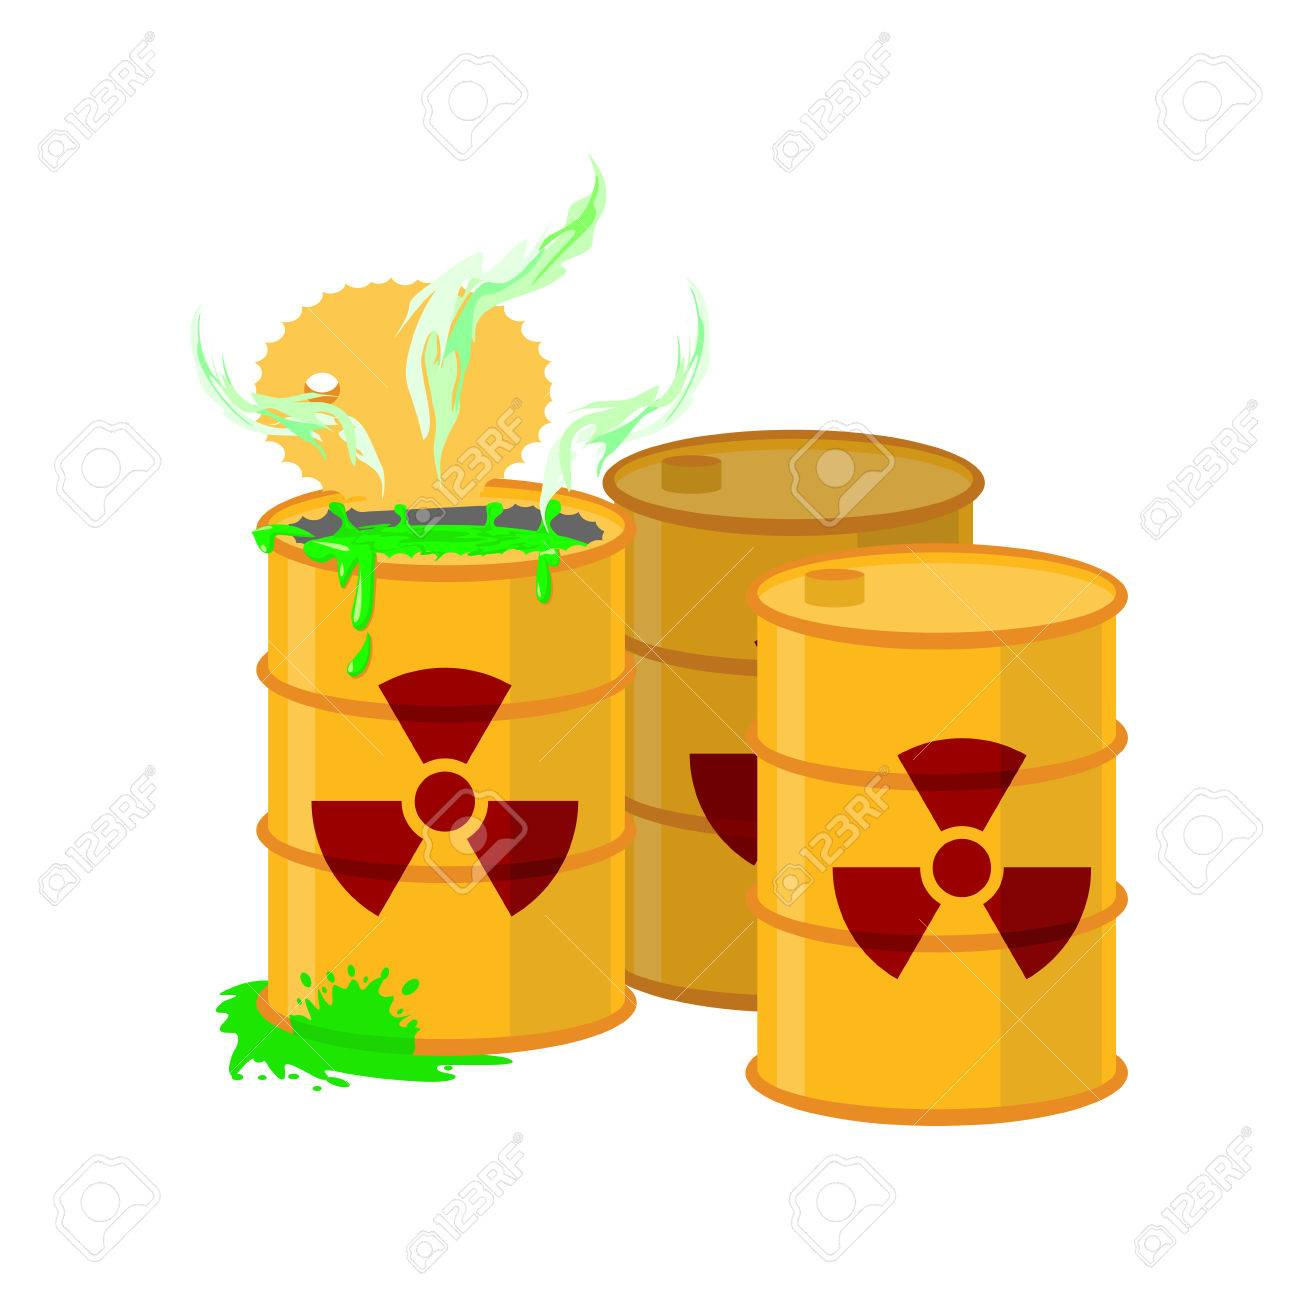 Yellow barrel with a radiation sign. Open container of radioactive waste. Green spilled acid. Vector illustration - 43817578